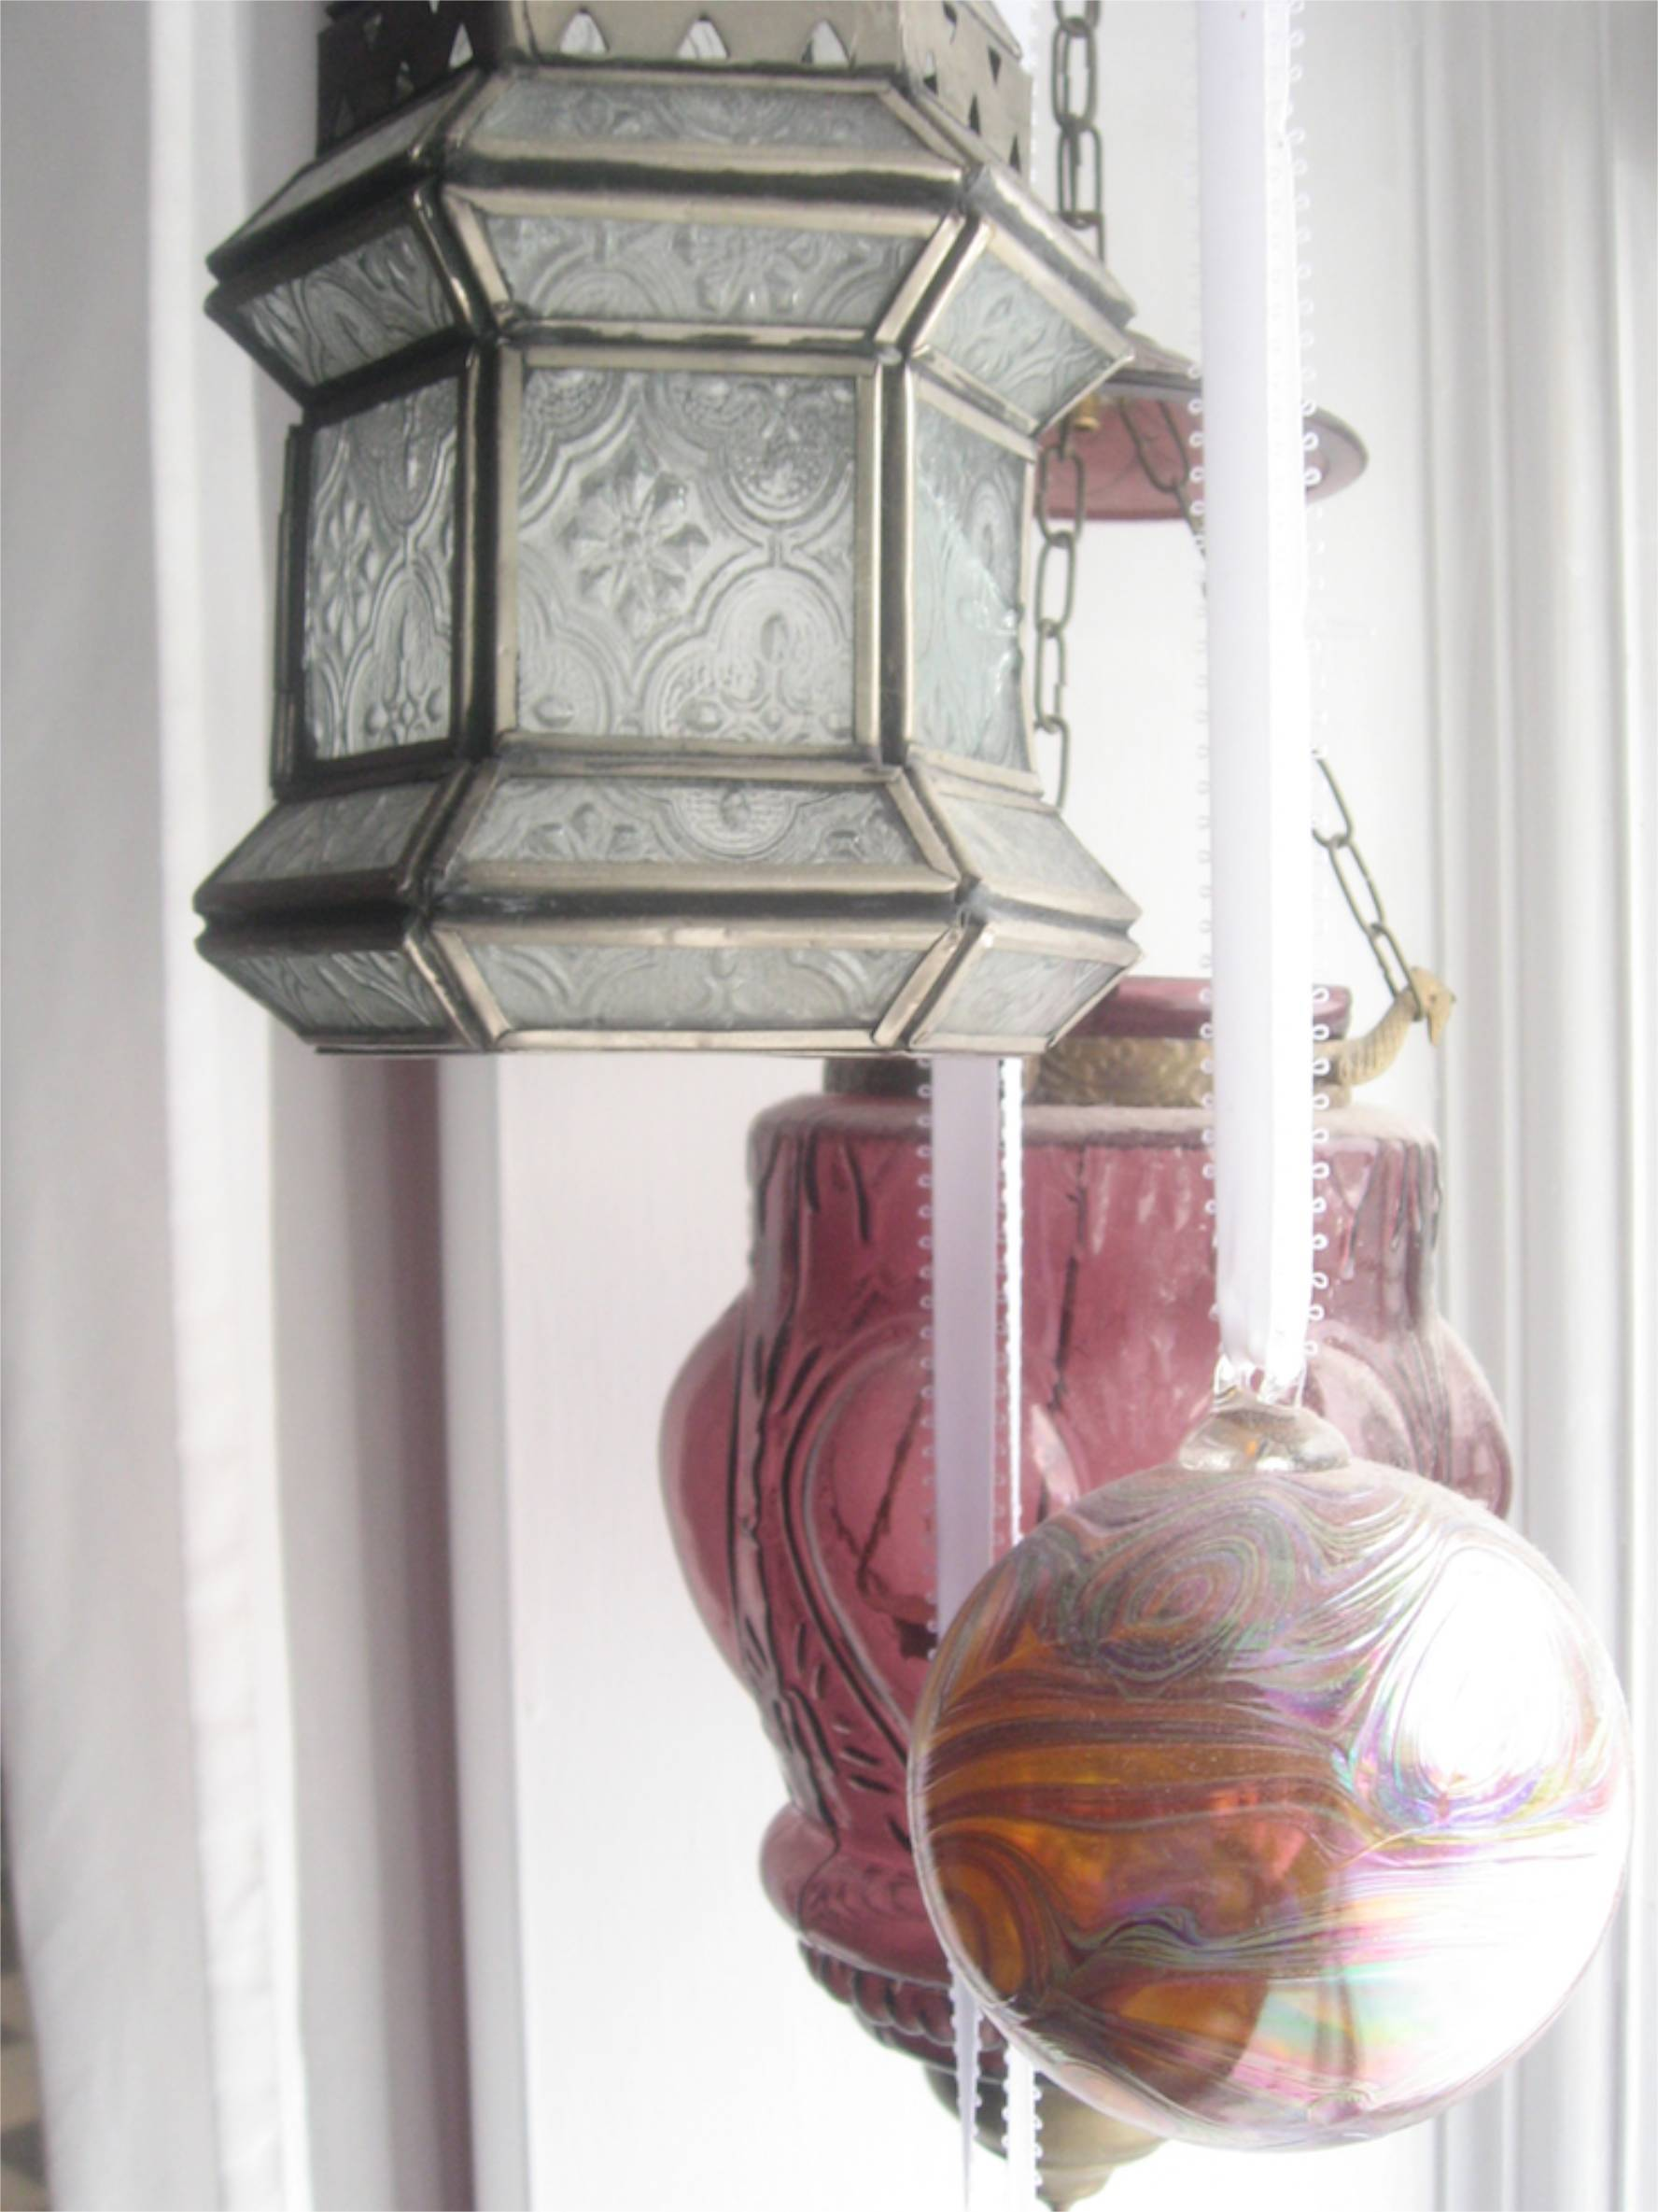 lanterns and glass balls in window